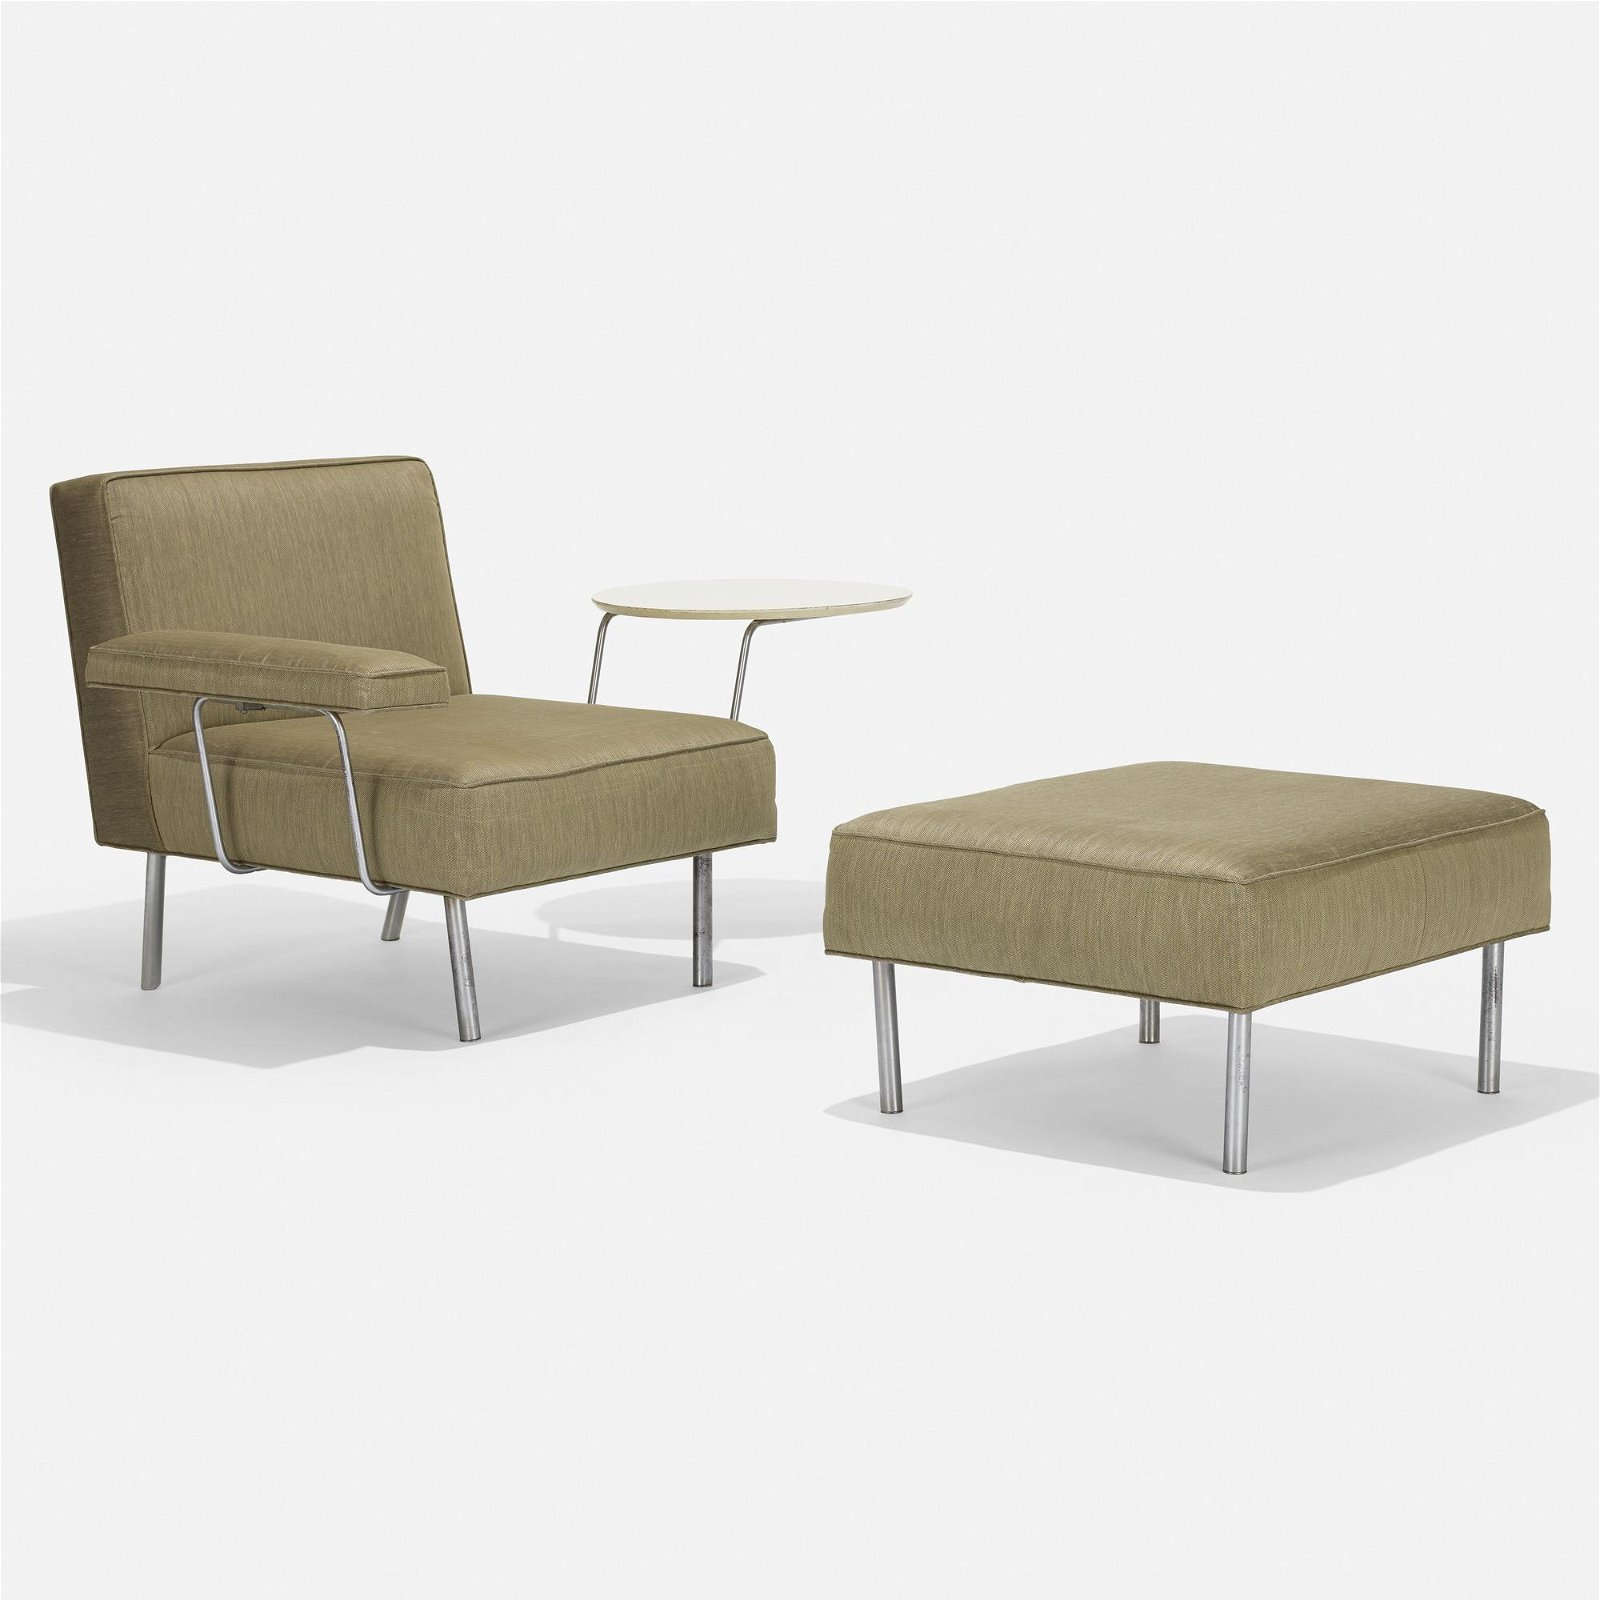 George Nelson & Associates, lounge chair and ottoman